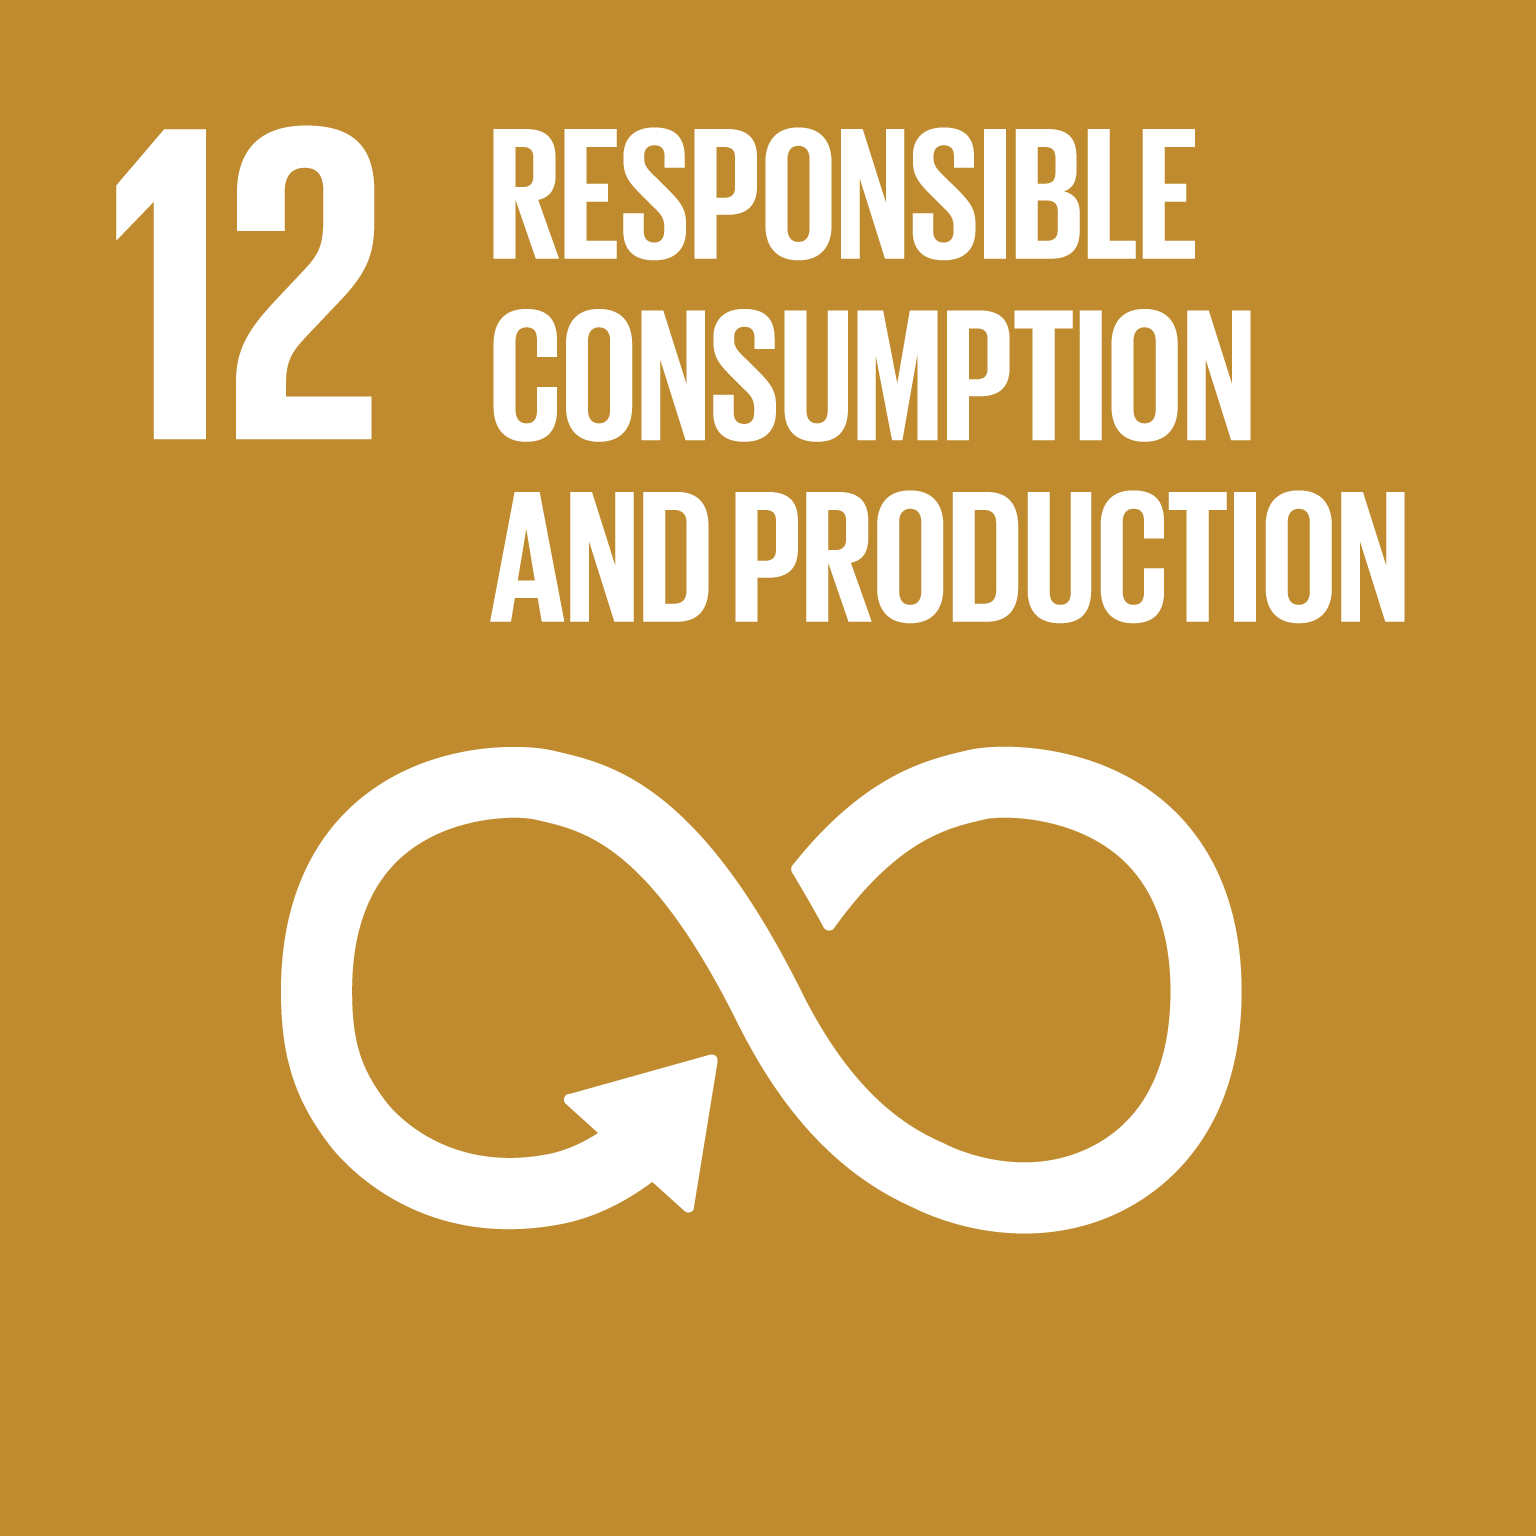 【SDGs logo】RESPONSIBLE CONSUMPTION AND PRODUCTION